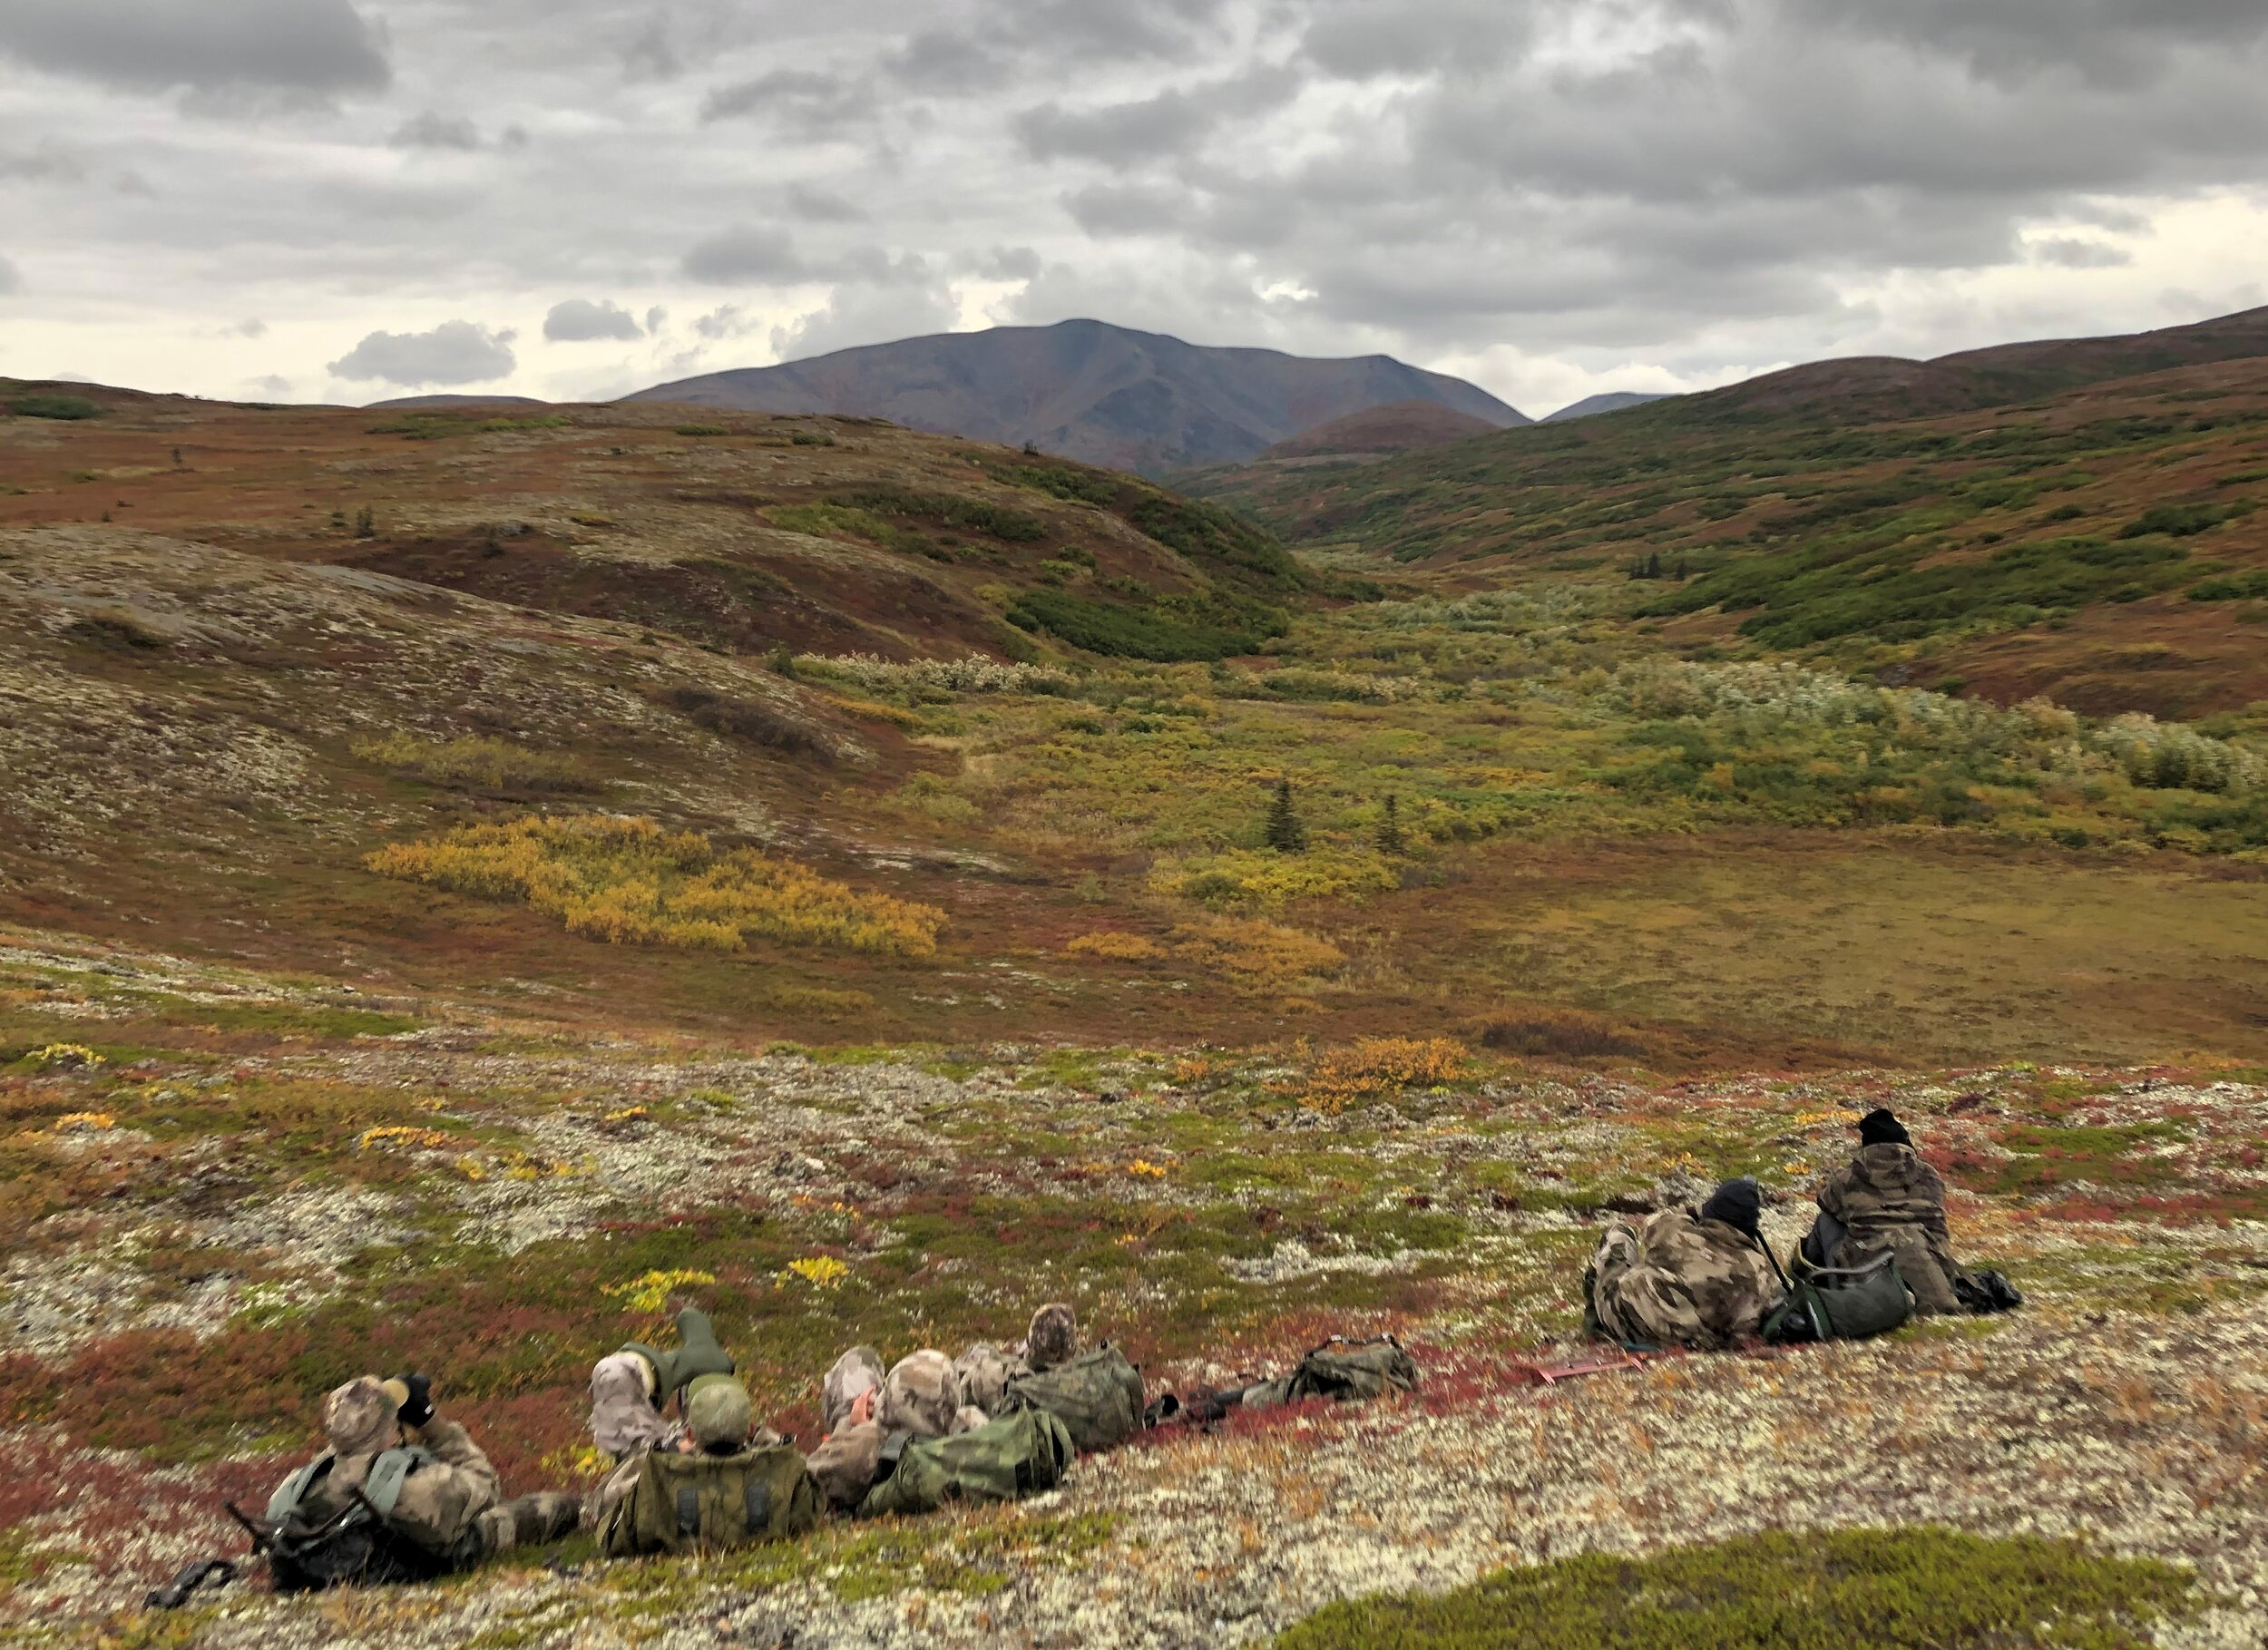 Glassing for moose and caribou right before the storm hit.